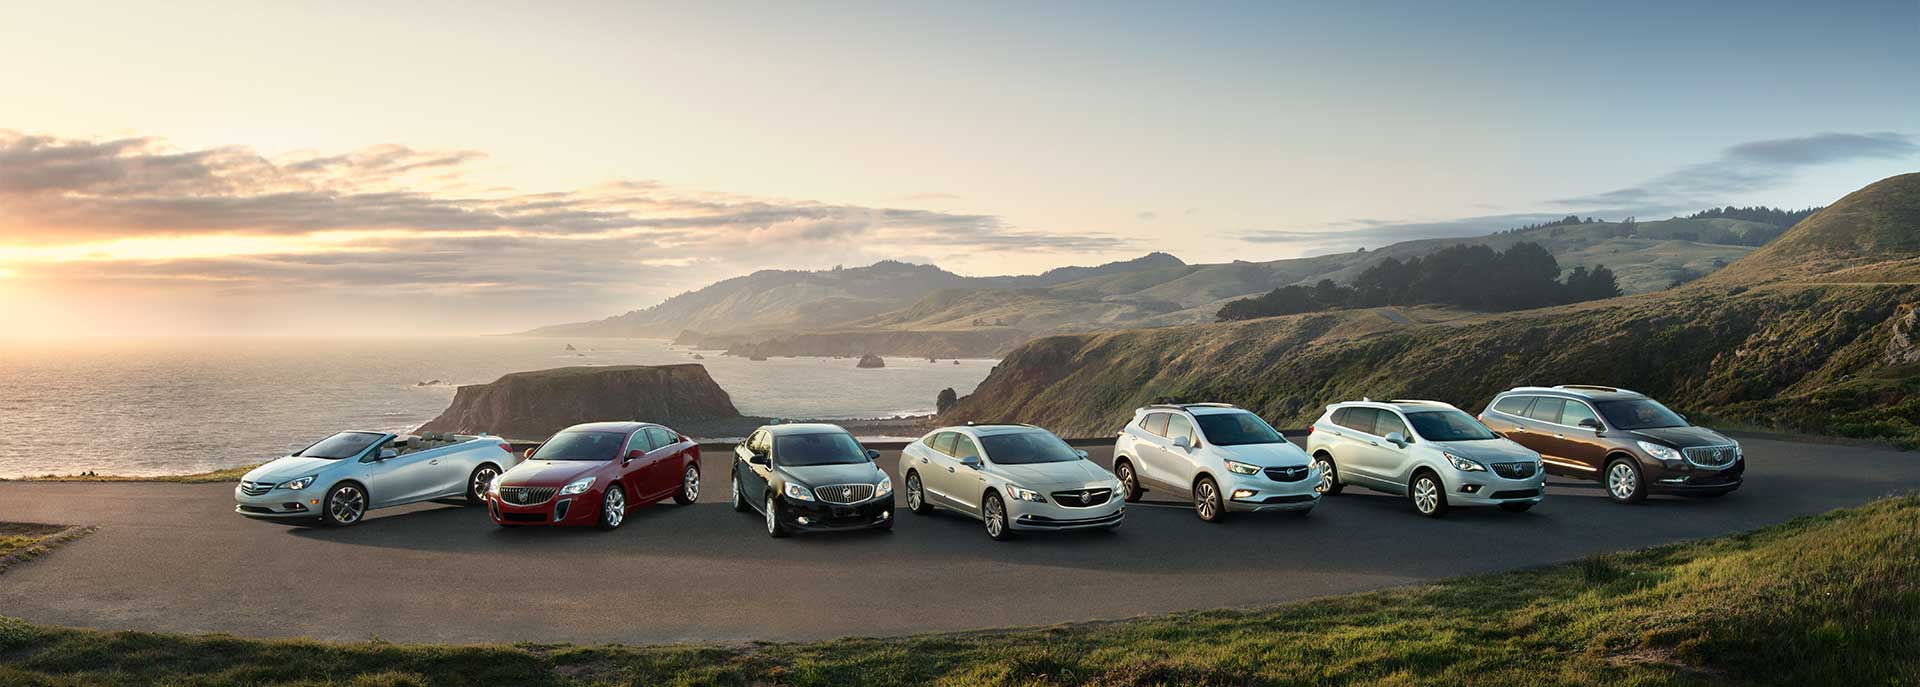 buick plano watch verano youtube